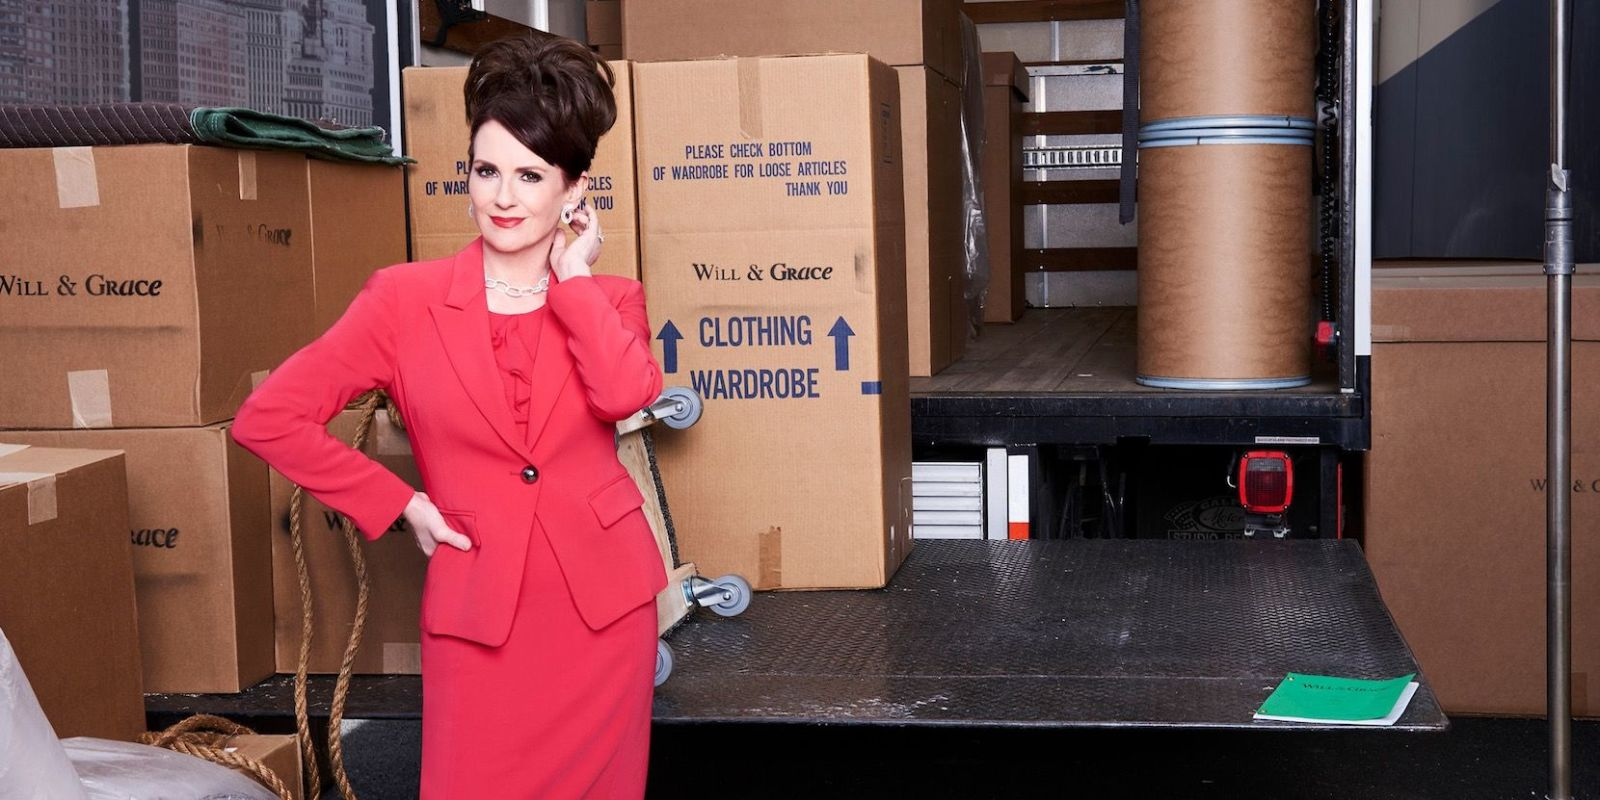 Will & Grace star Megan Mullally had planned a live Karen musical – here's why it was scrapped